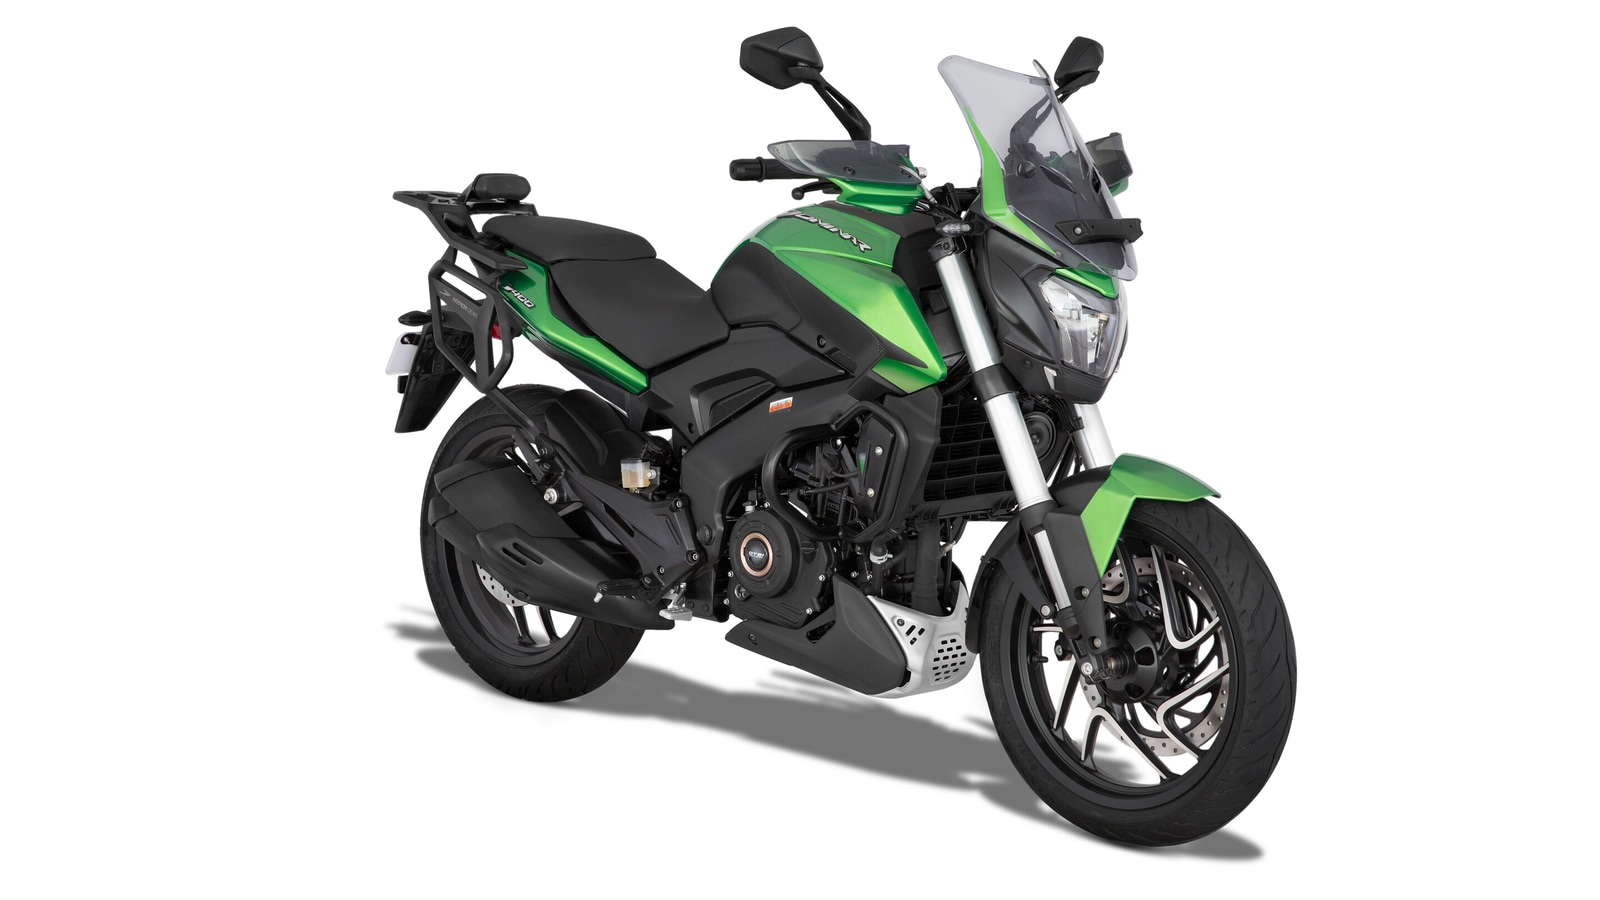 hindustantimes.com - HT Auto Desk - Bajaj Dominar 400 with factory-fitted touring accessories launched. Check price